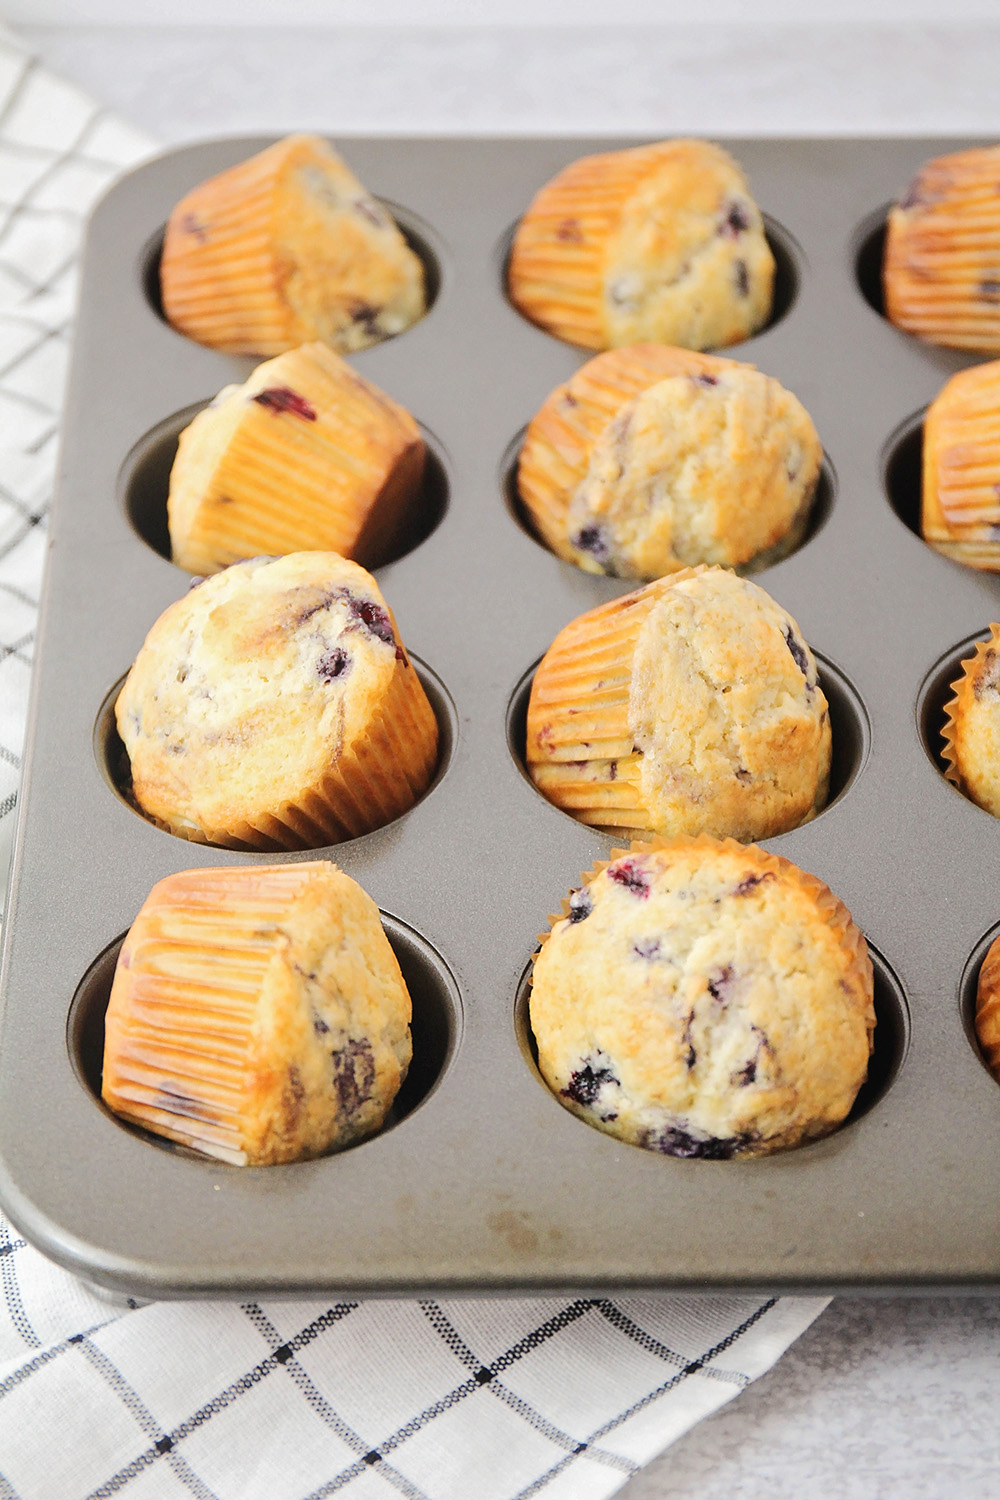 These huckleberry muffins are so light and fluffy, with delicious little huckleberries studded throughout!